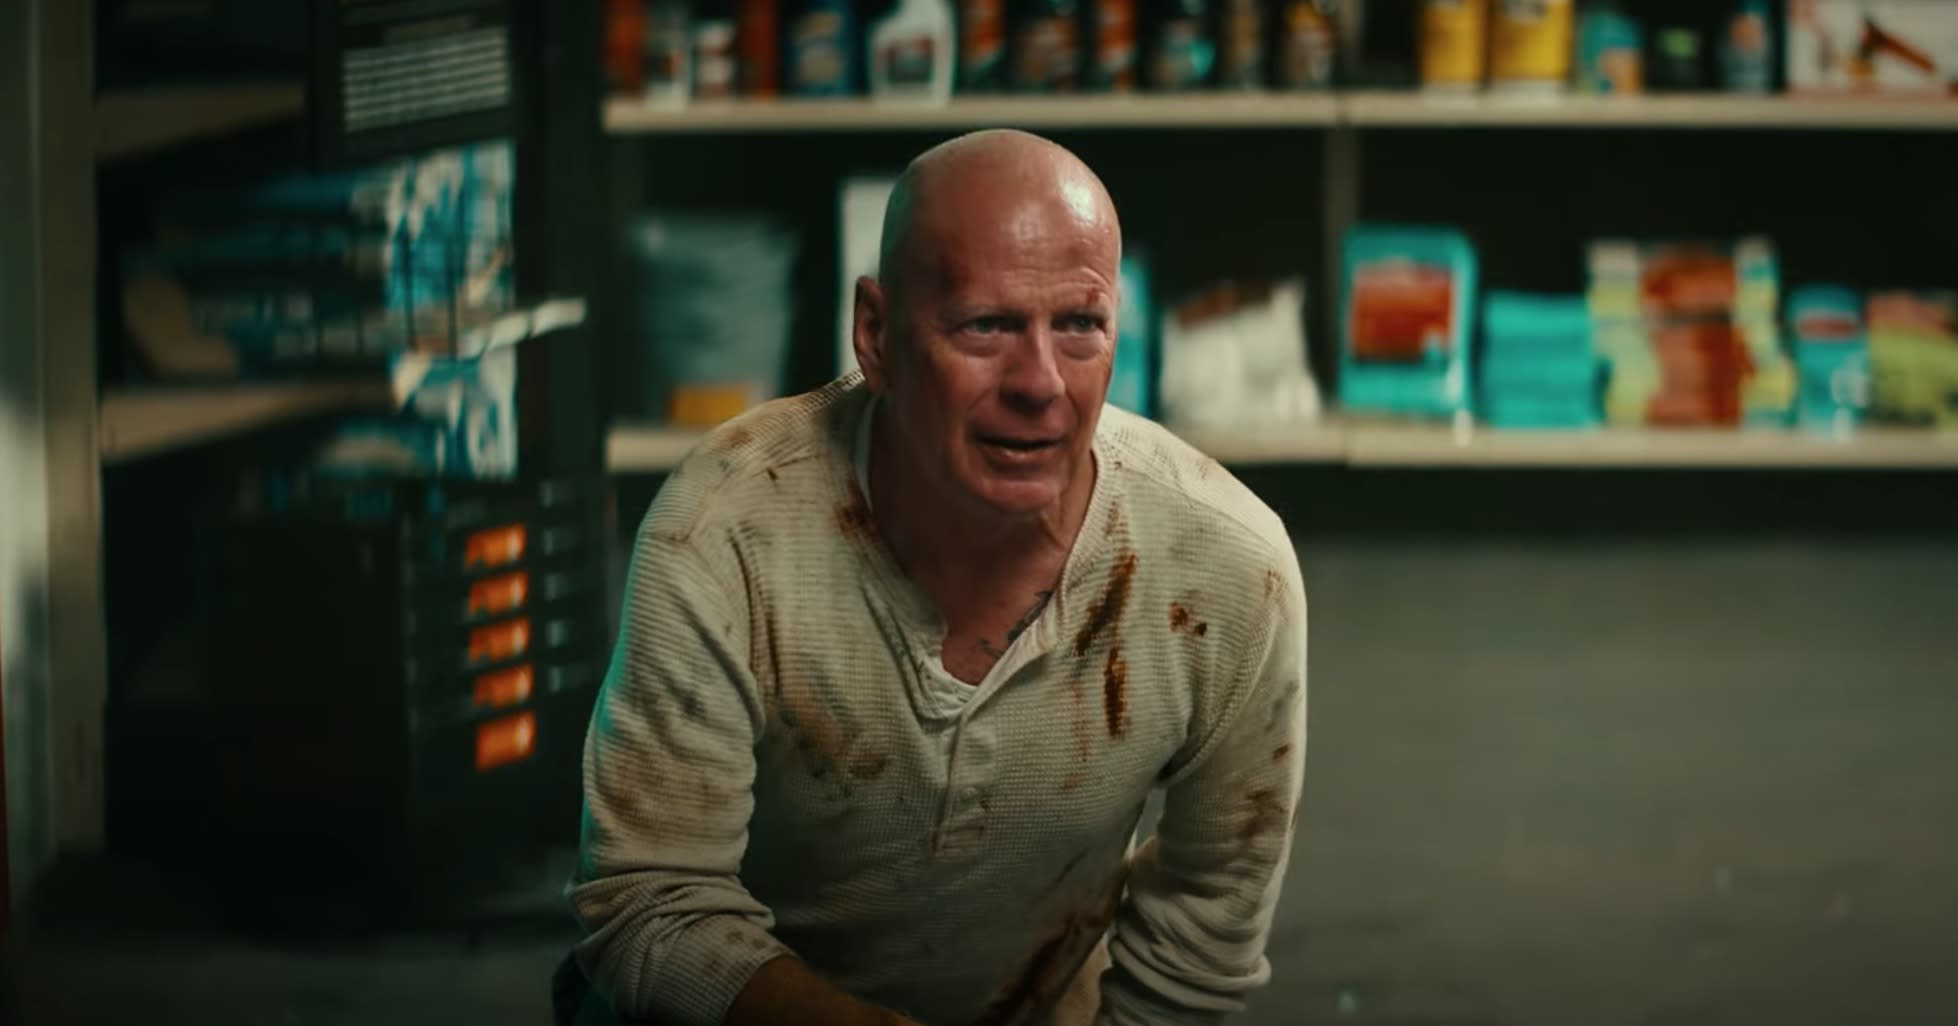 Bruce Willis Stars in Commercial for 'Die Hard' Car Batteries